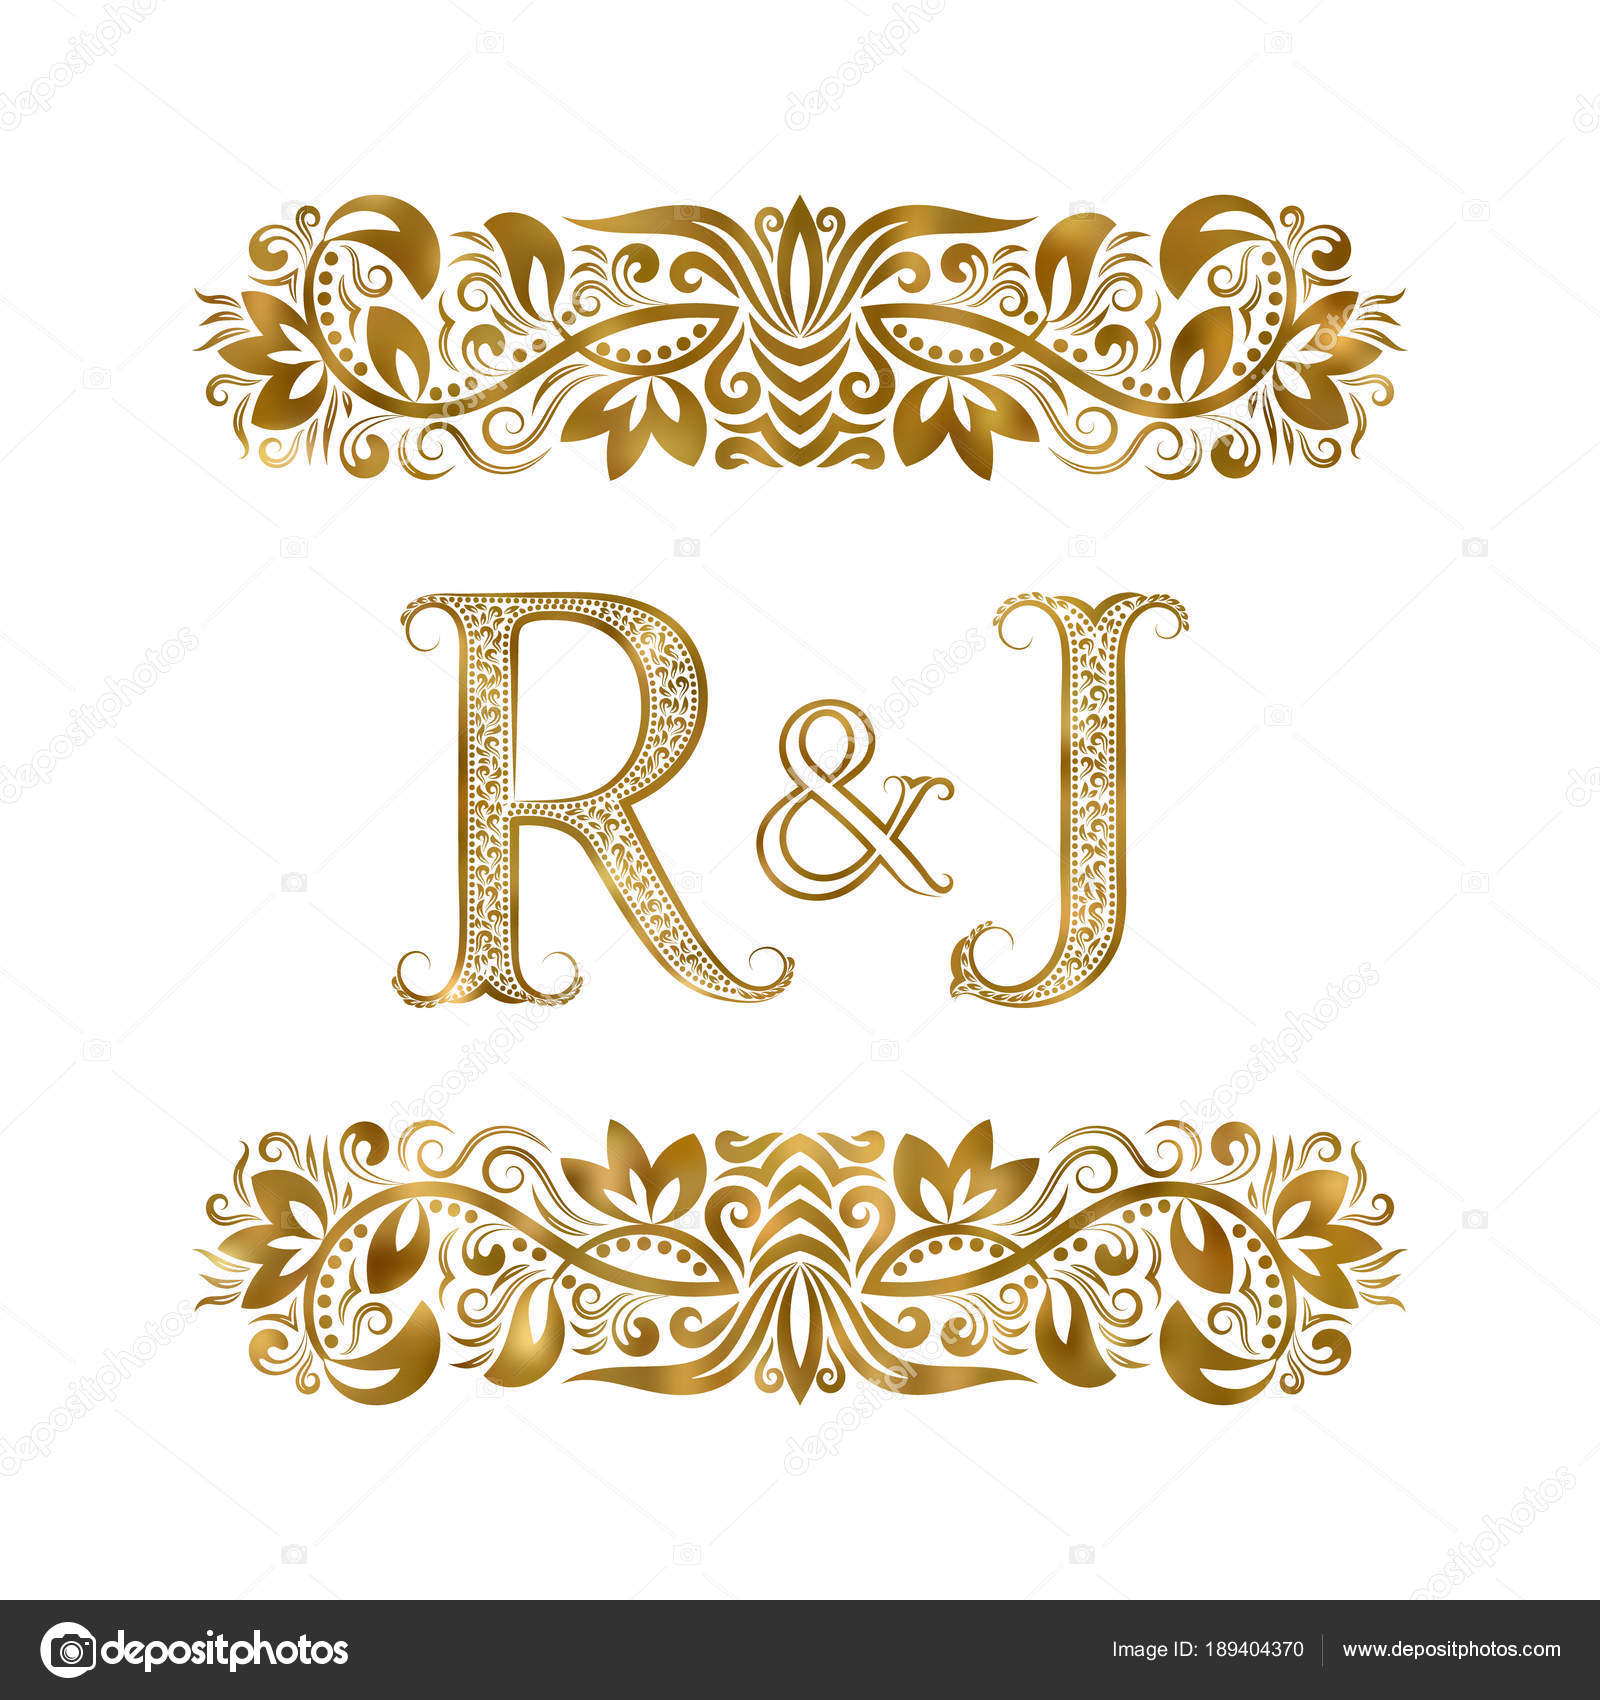 R And J Vintage Initials Logo Symbol The Letters Are Surrounded By Ornamental Elements Wedding Or Business Partners Monogram In Royal Style